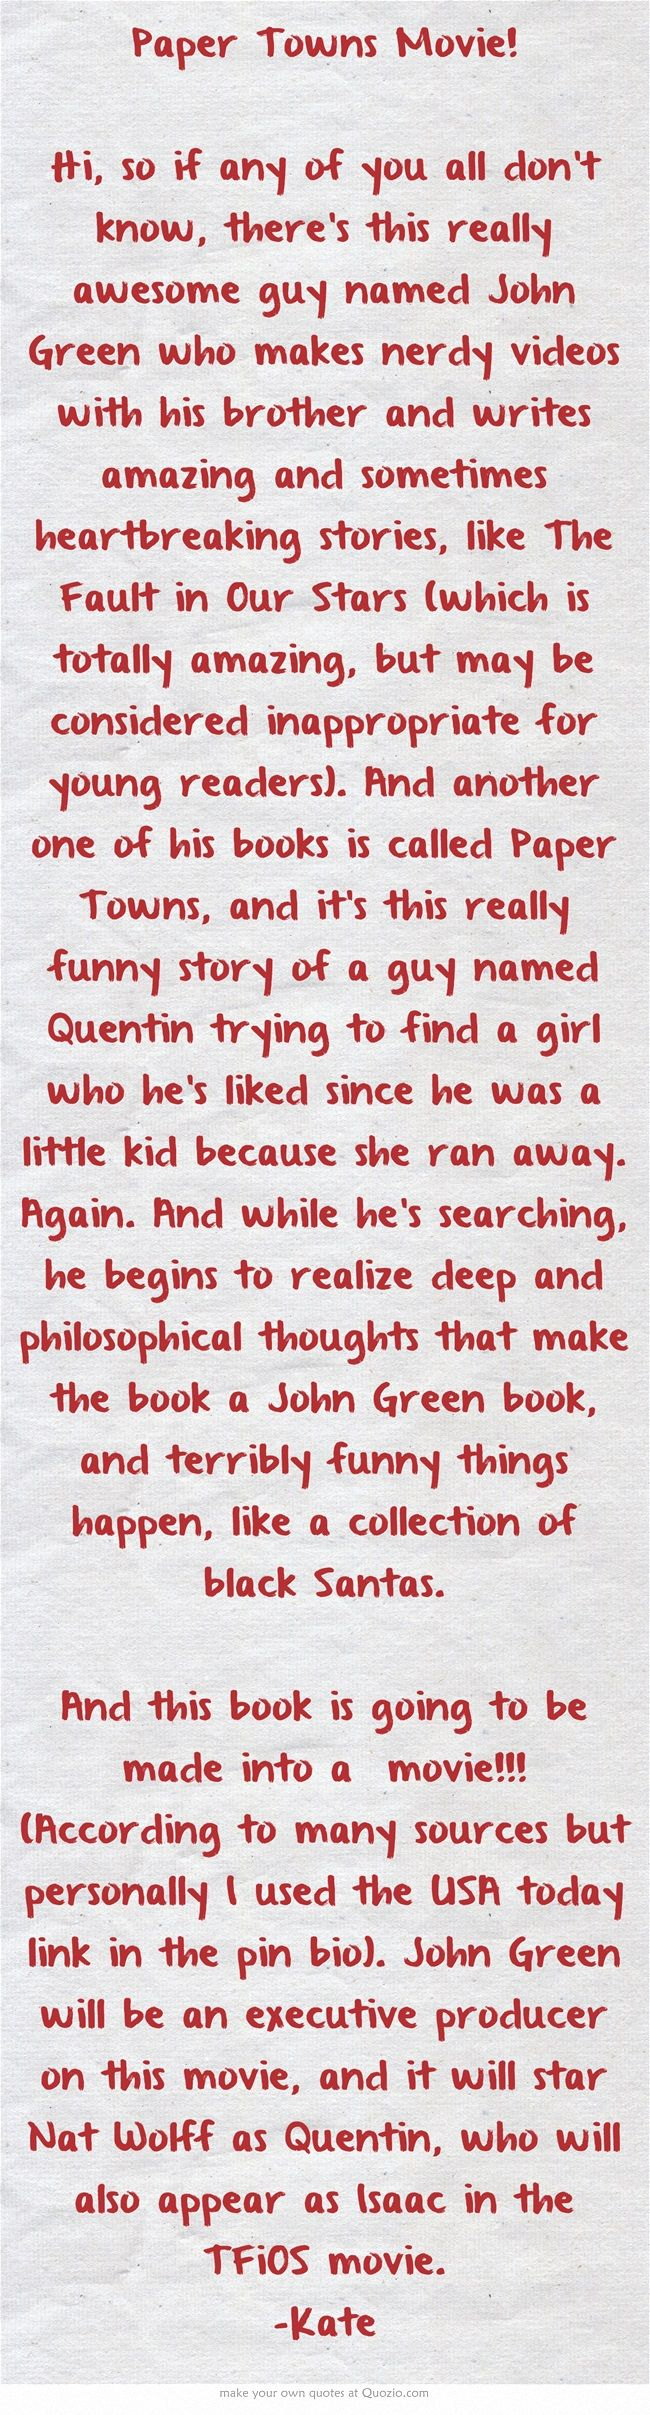 paper towns by john green Read book: paper towns by john green online free online reading paper towns is available you can read book paper towns by john green in our library for absolutely free.